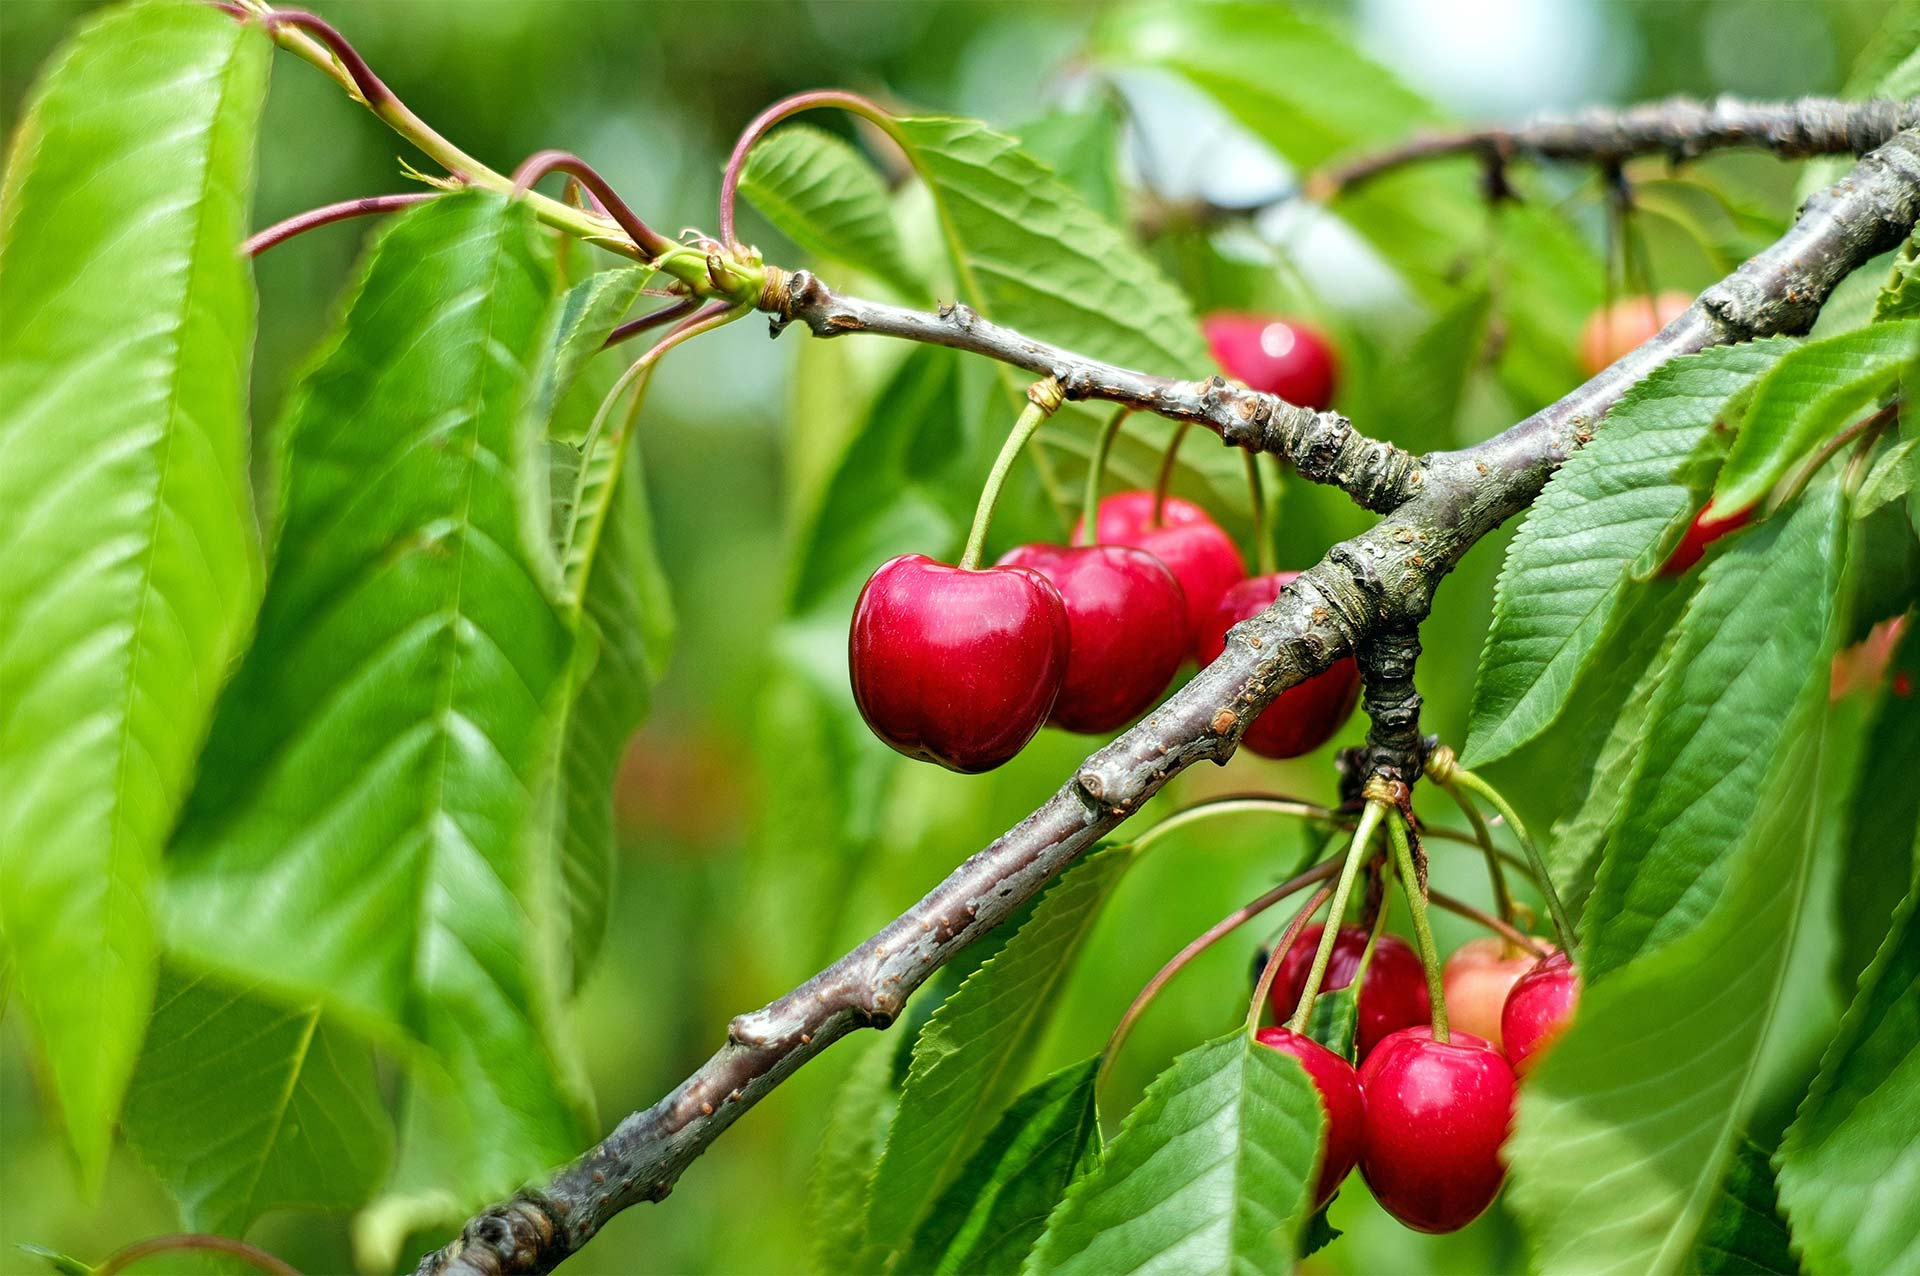 Cherries from The Fruit Farm Group